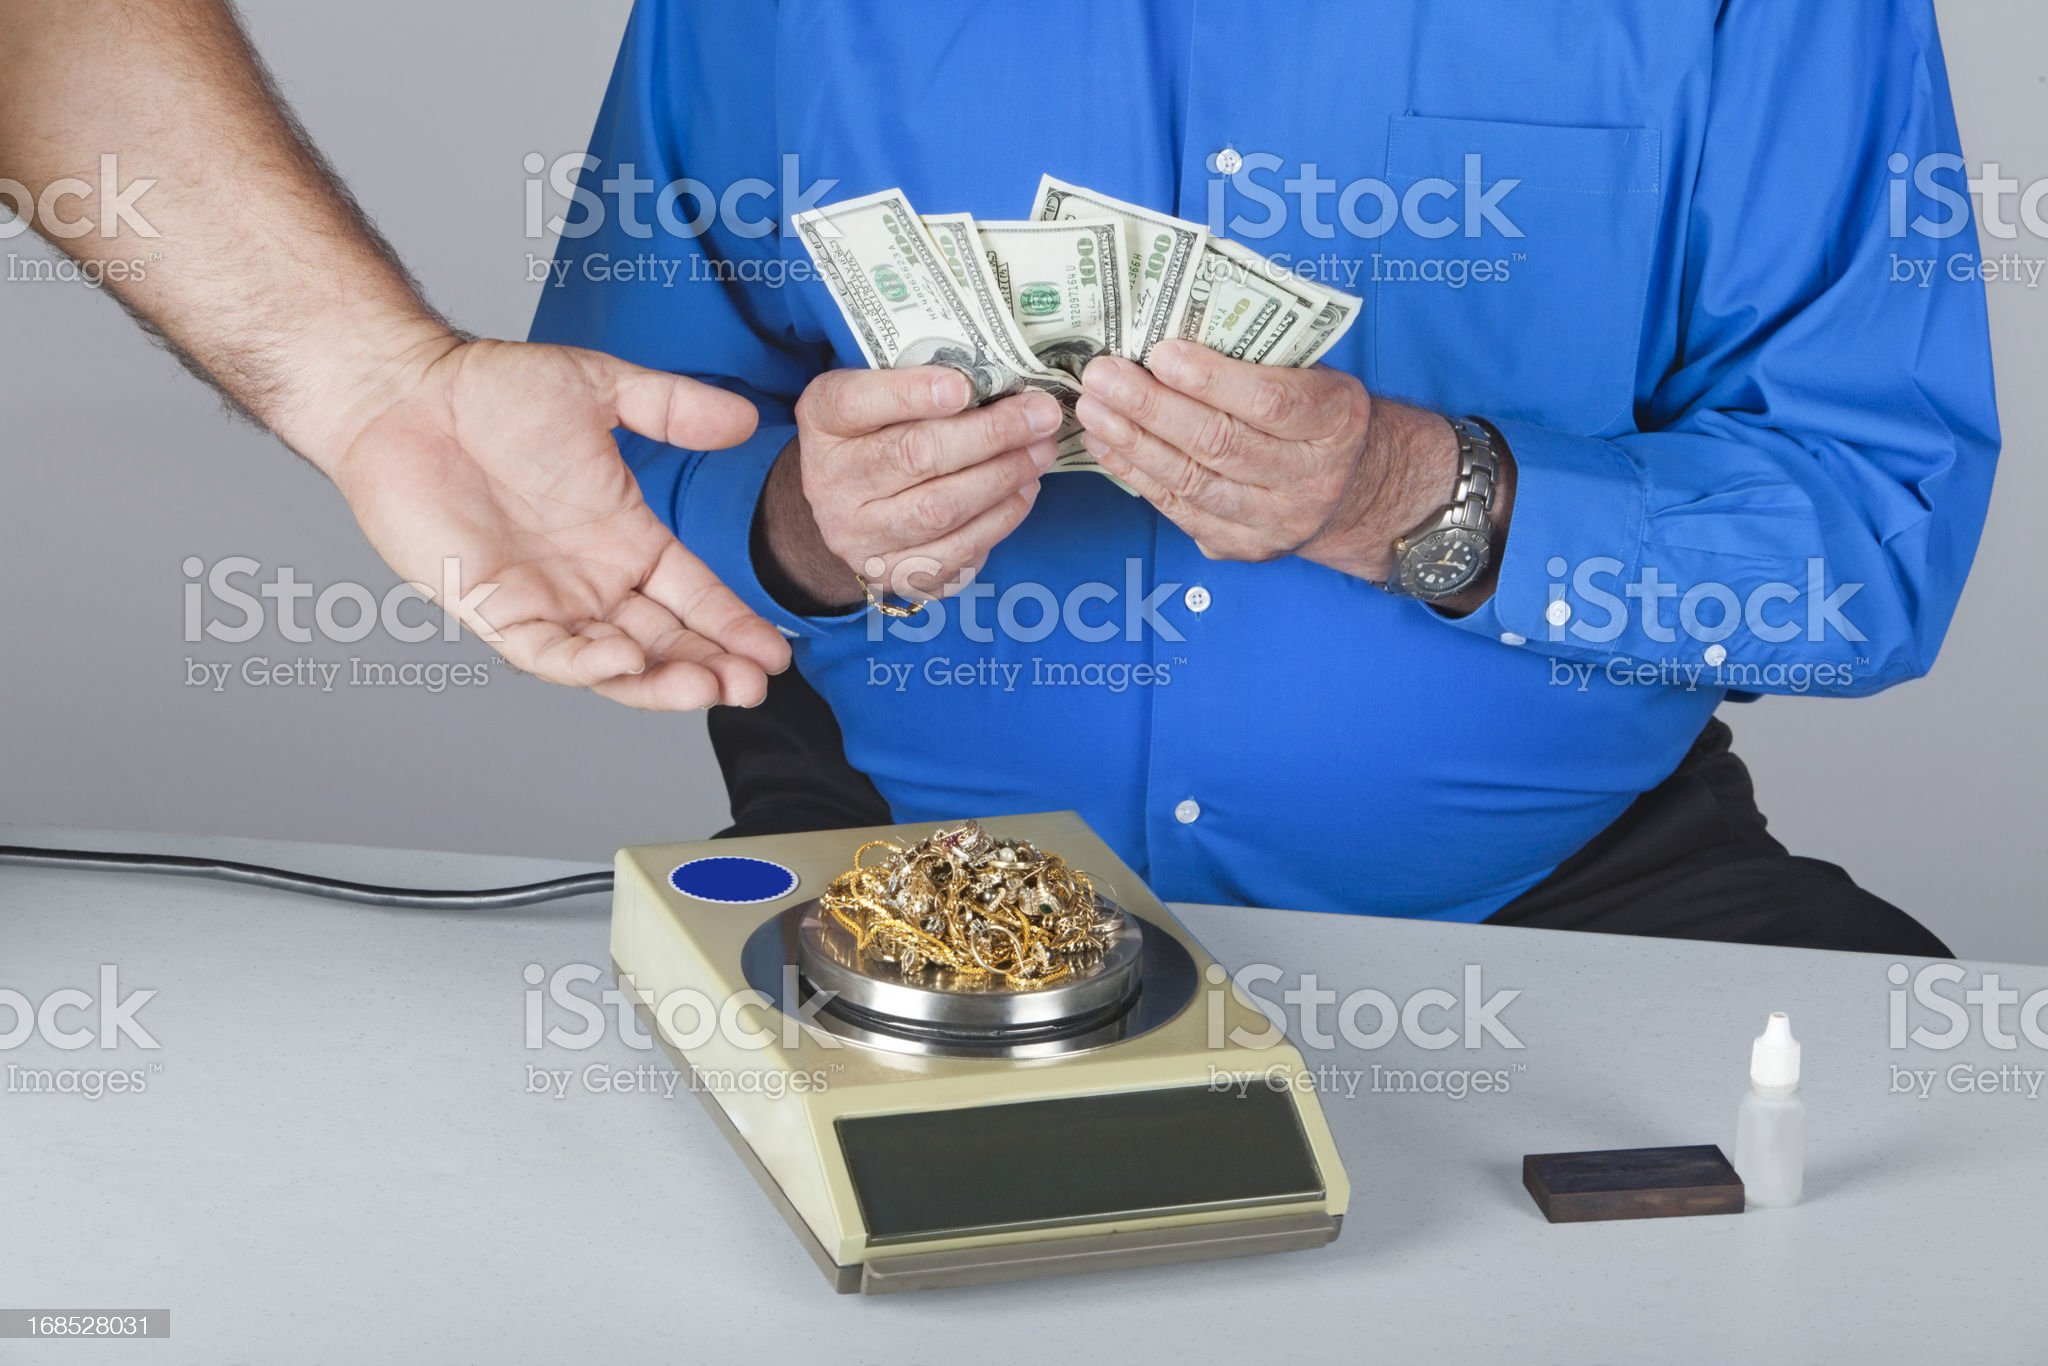 selling scrap gold on a penny weight scale royalty-free stock photo